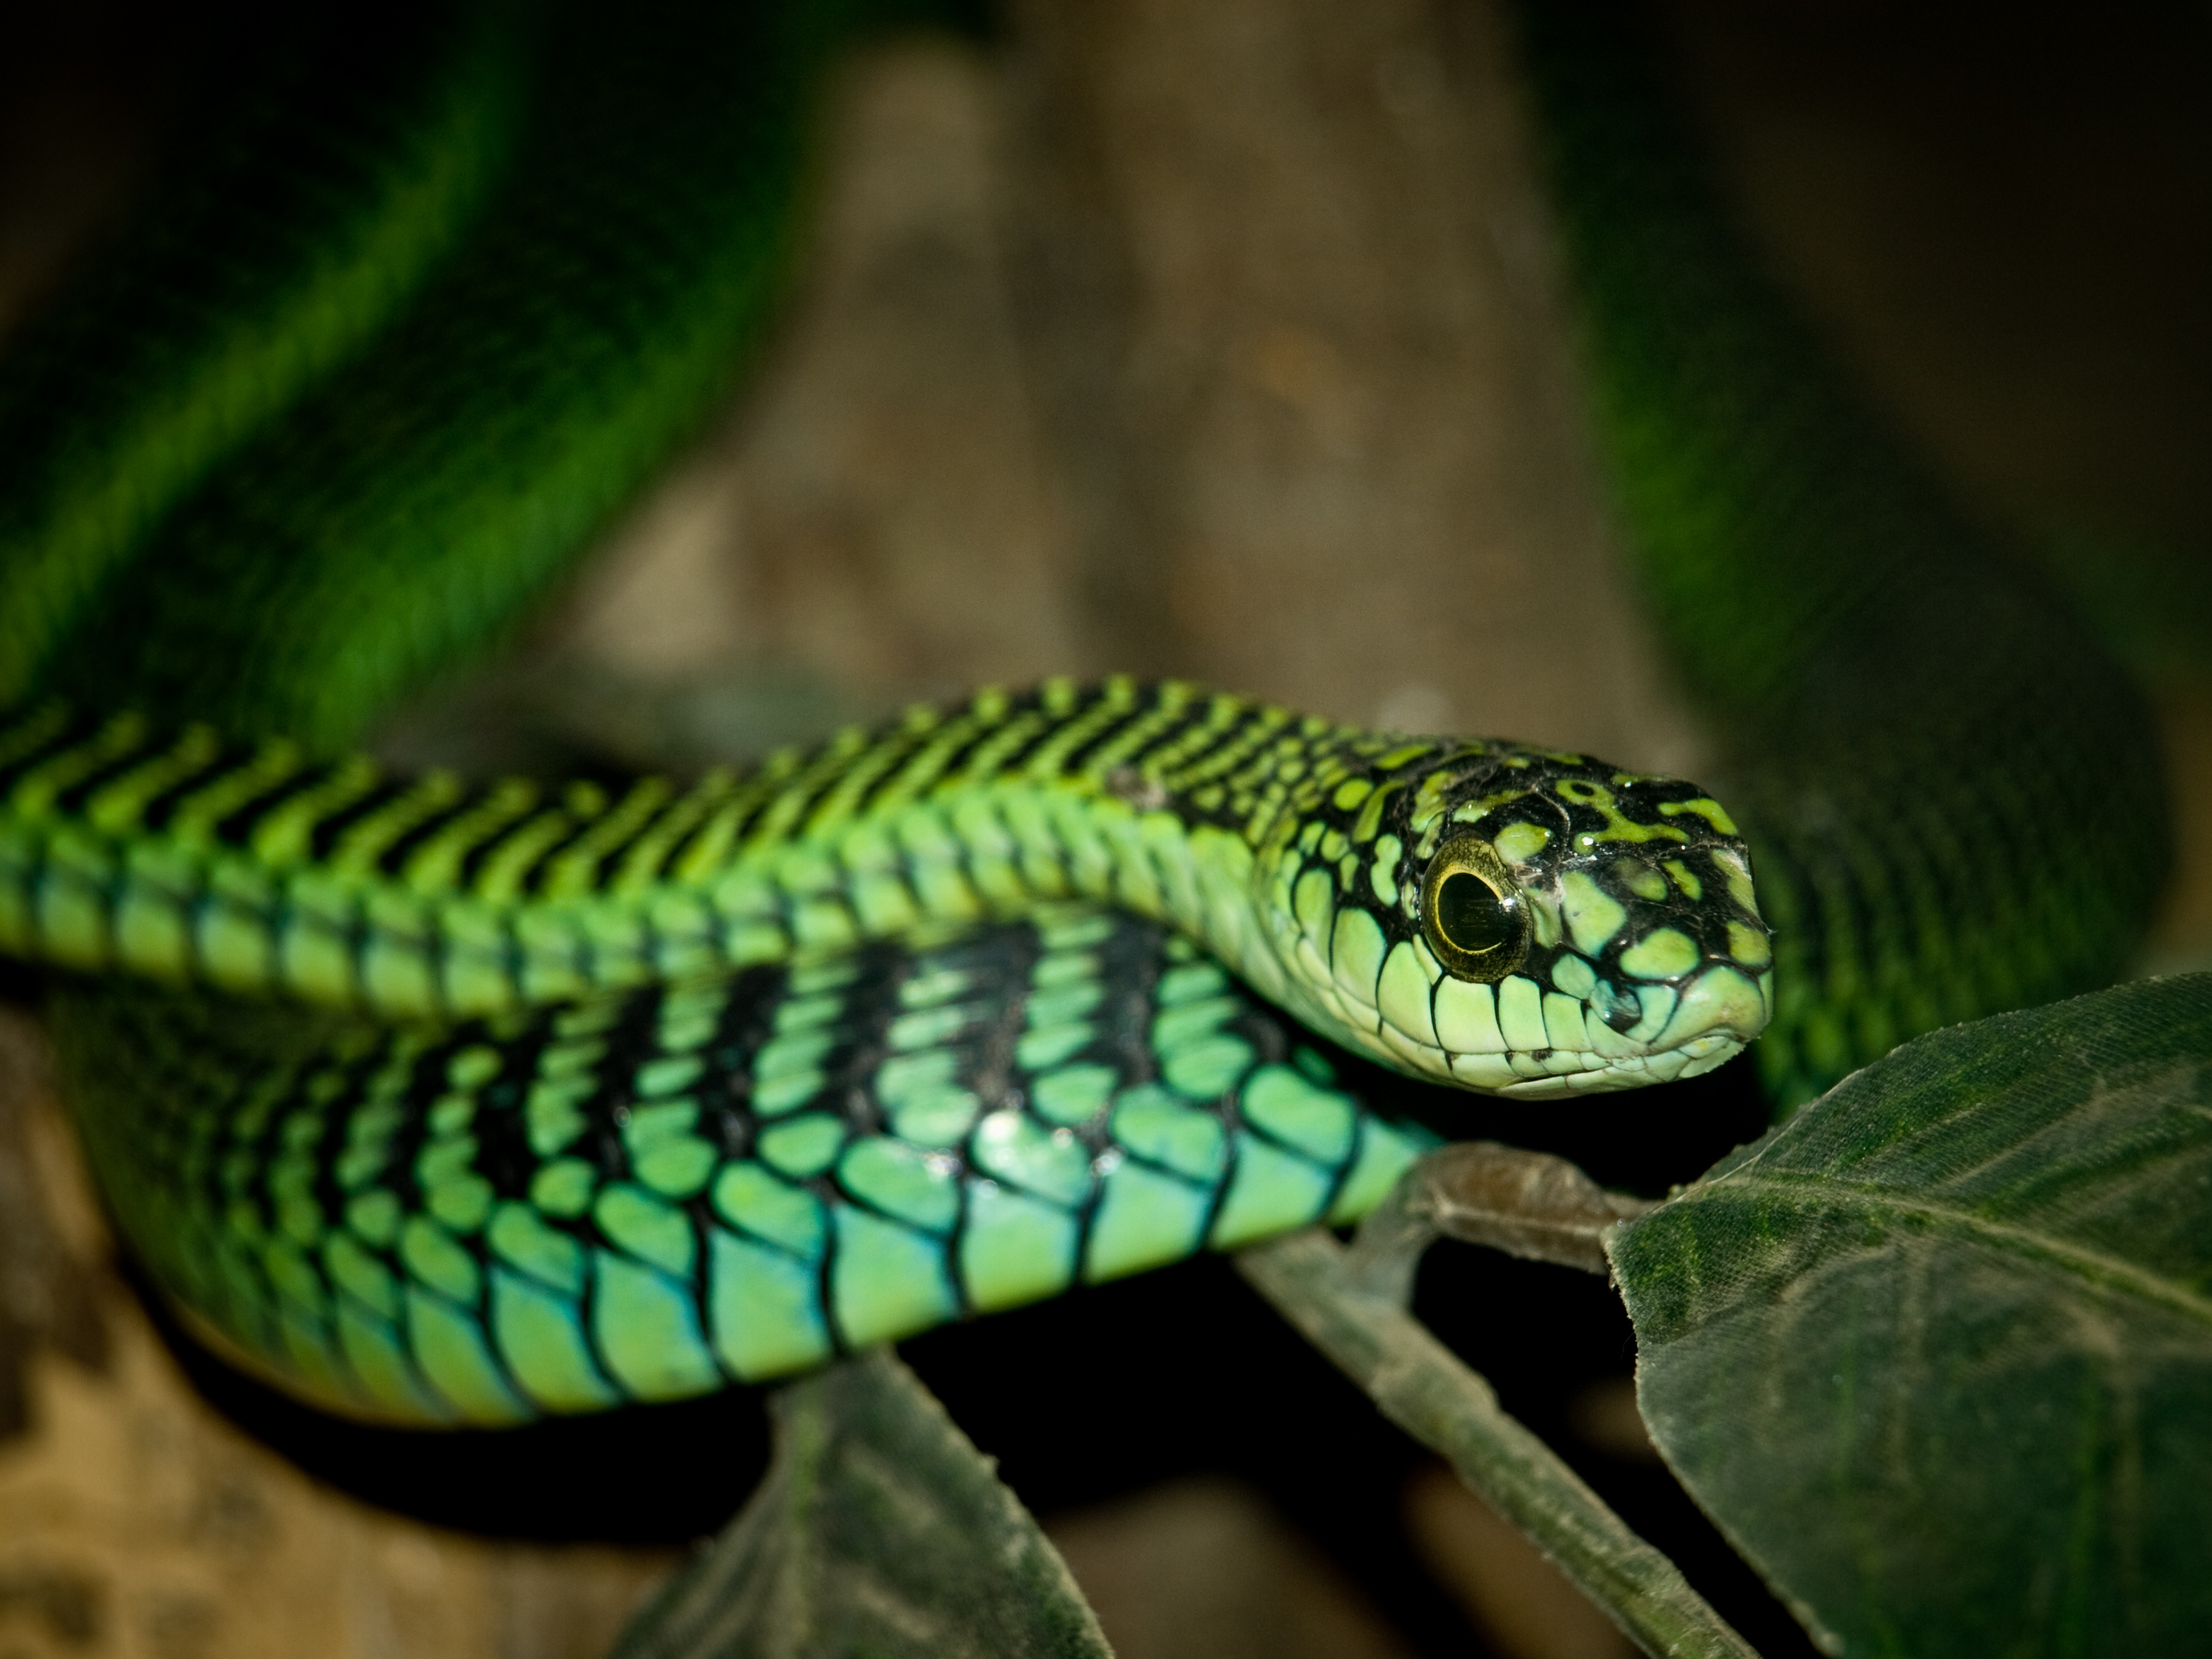 Close-up of a boomslang snake through glass at the snake centre near our campsite in the Ngorongoro Conservation Area, Tanzania